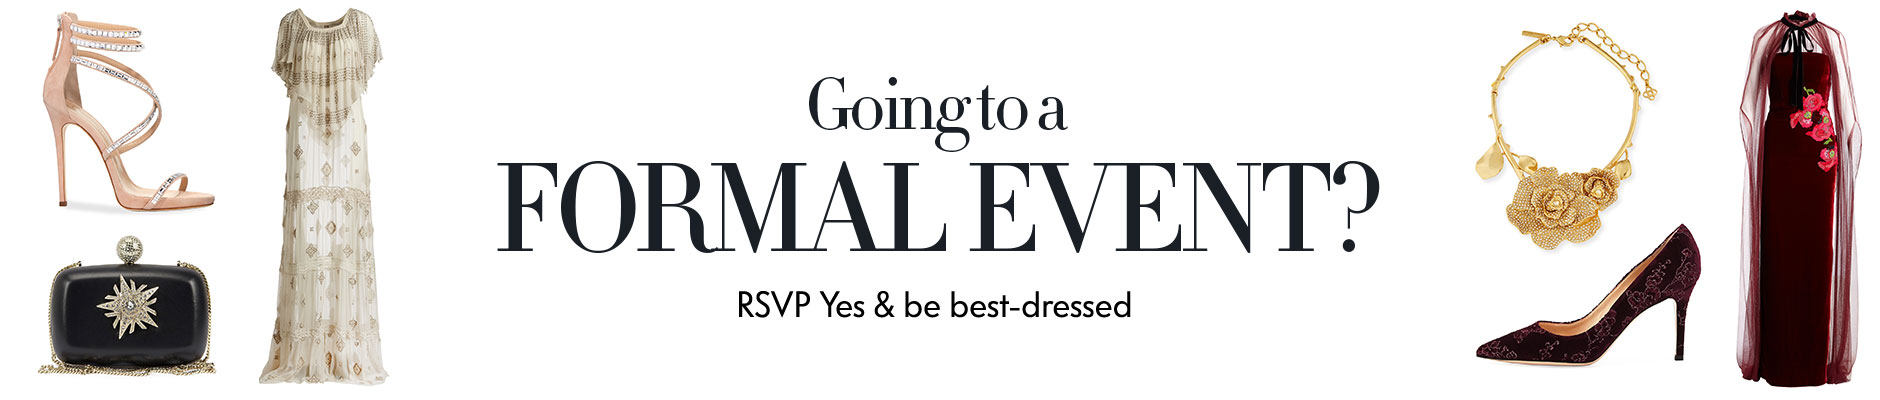 Going to a formal event? RSVP Yes & be best-dressed